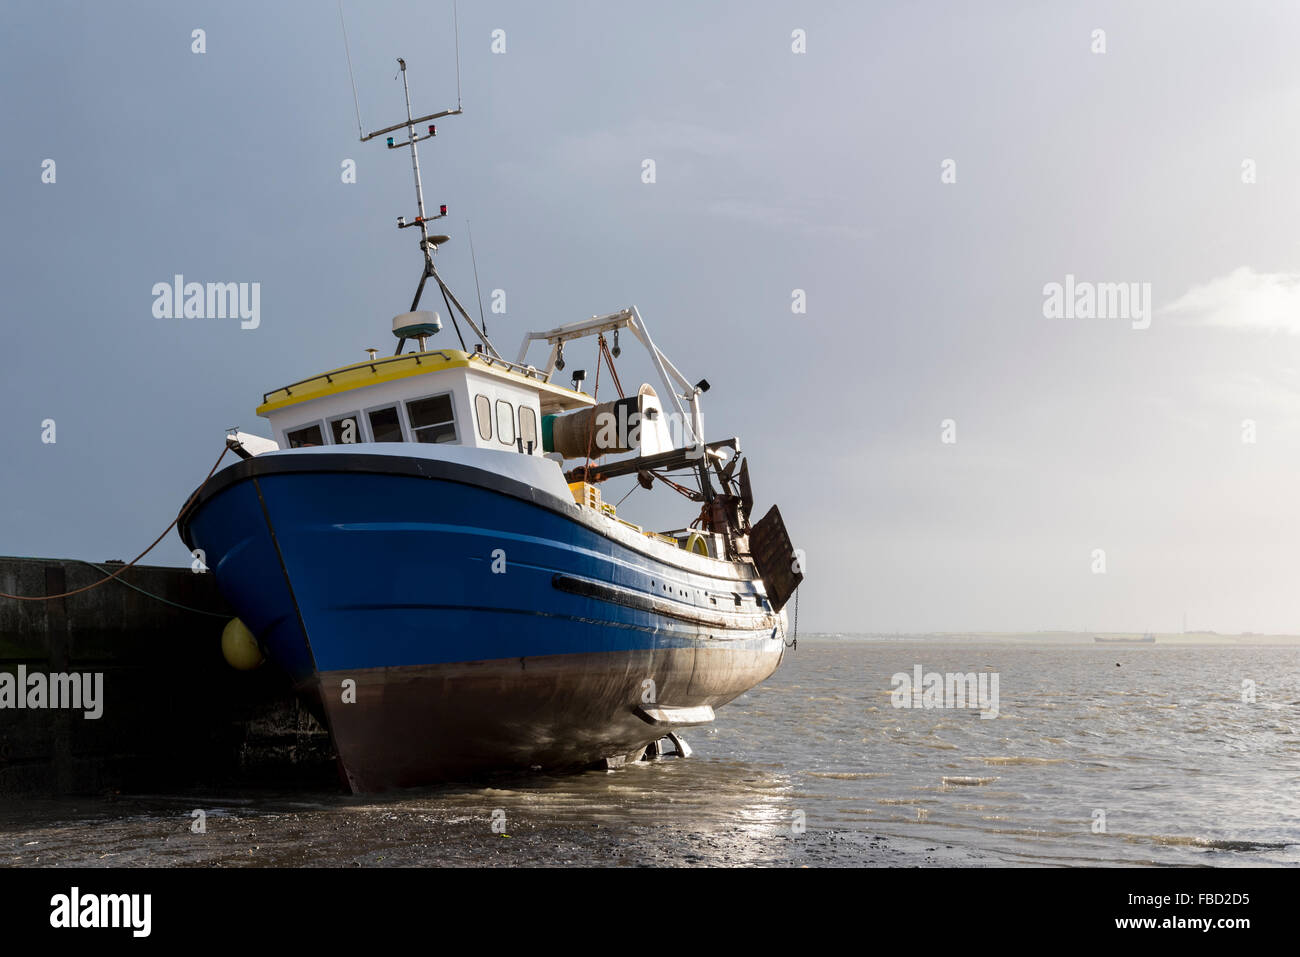 A fishing boat moored at the quayside at Leigh on Sea, Essex - Stock Image